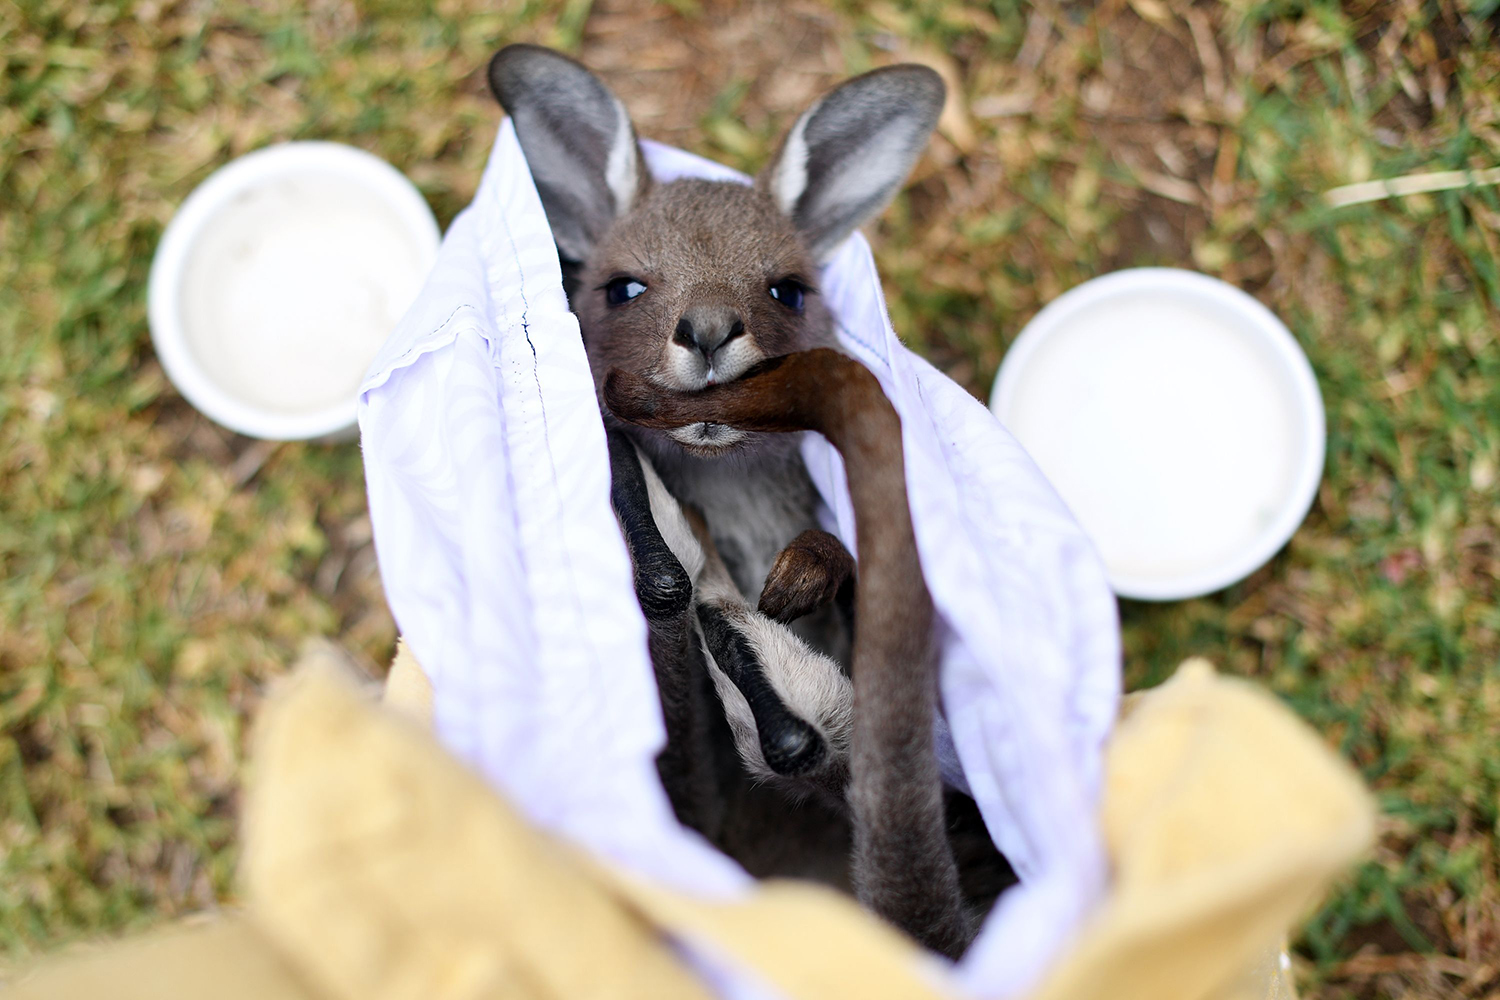 A kangaroo is cared for by volunteers of a wildlife rescue group who are working to save and rehabilitate animals from the months-long bushfires outside Sydney on Jan. 9. SAEED KHAN/AFP via Getty Images